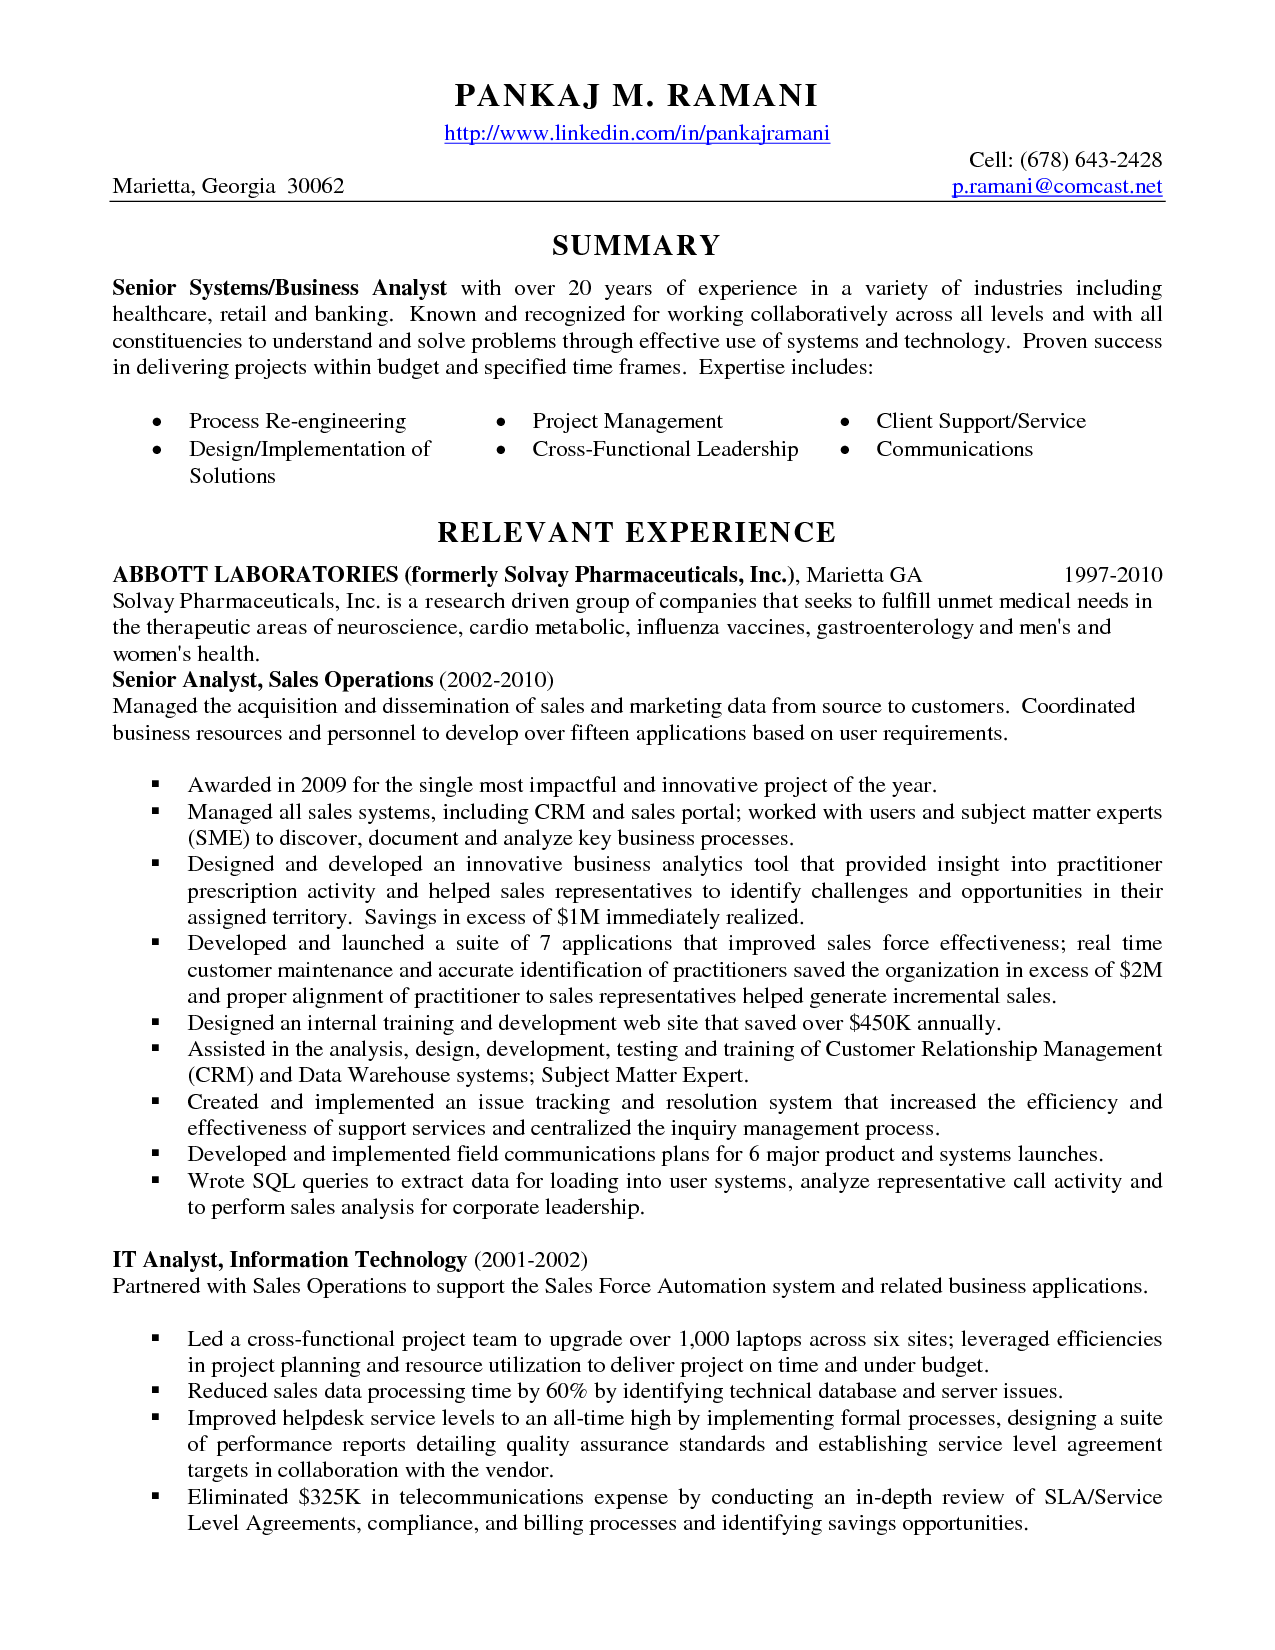 Senior Data Analyst Cv Resume Format Best Templates